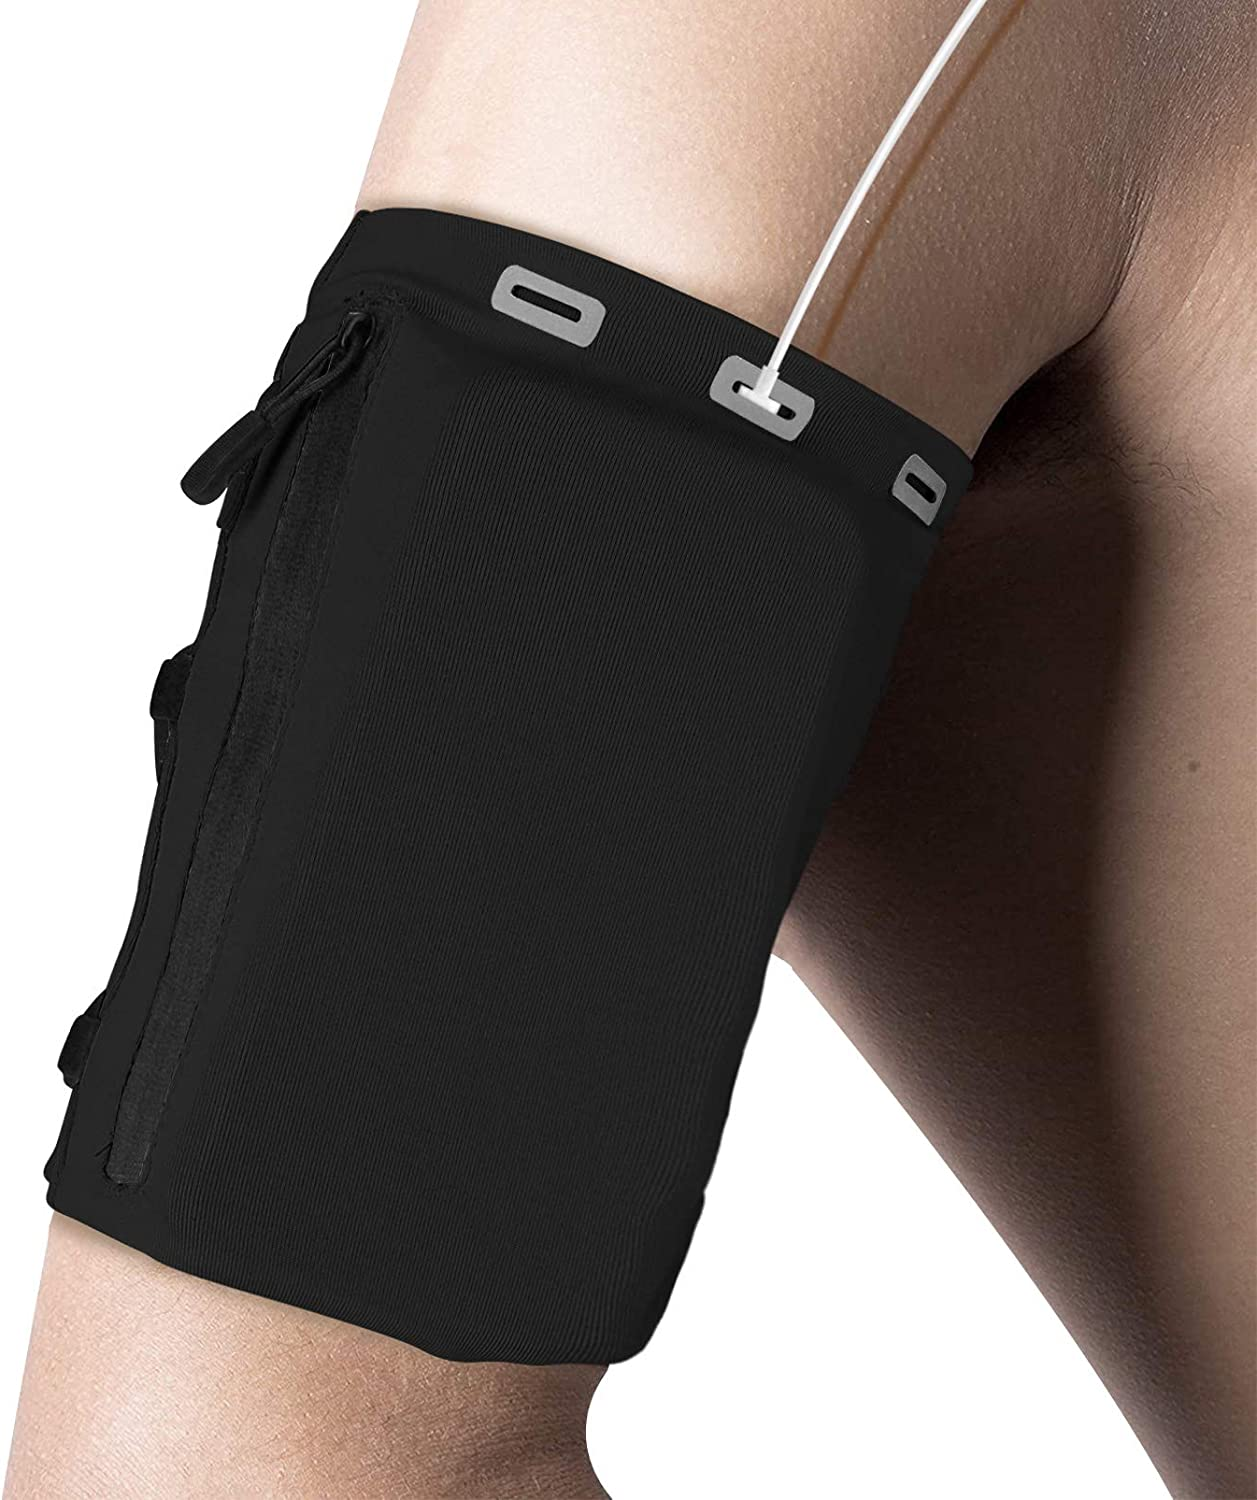 DONWELL Phone Armband Sleeve, Comfort and Adjustable Running Sports Arm Band Strap Holder Pouch Case for Exercise Workout Fit up to 7 inch Phones(Black)